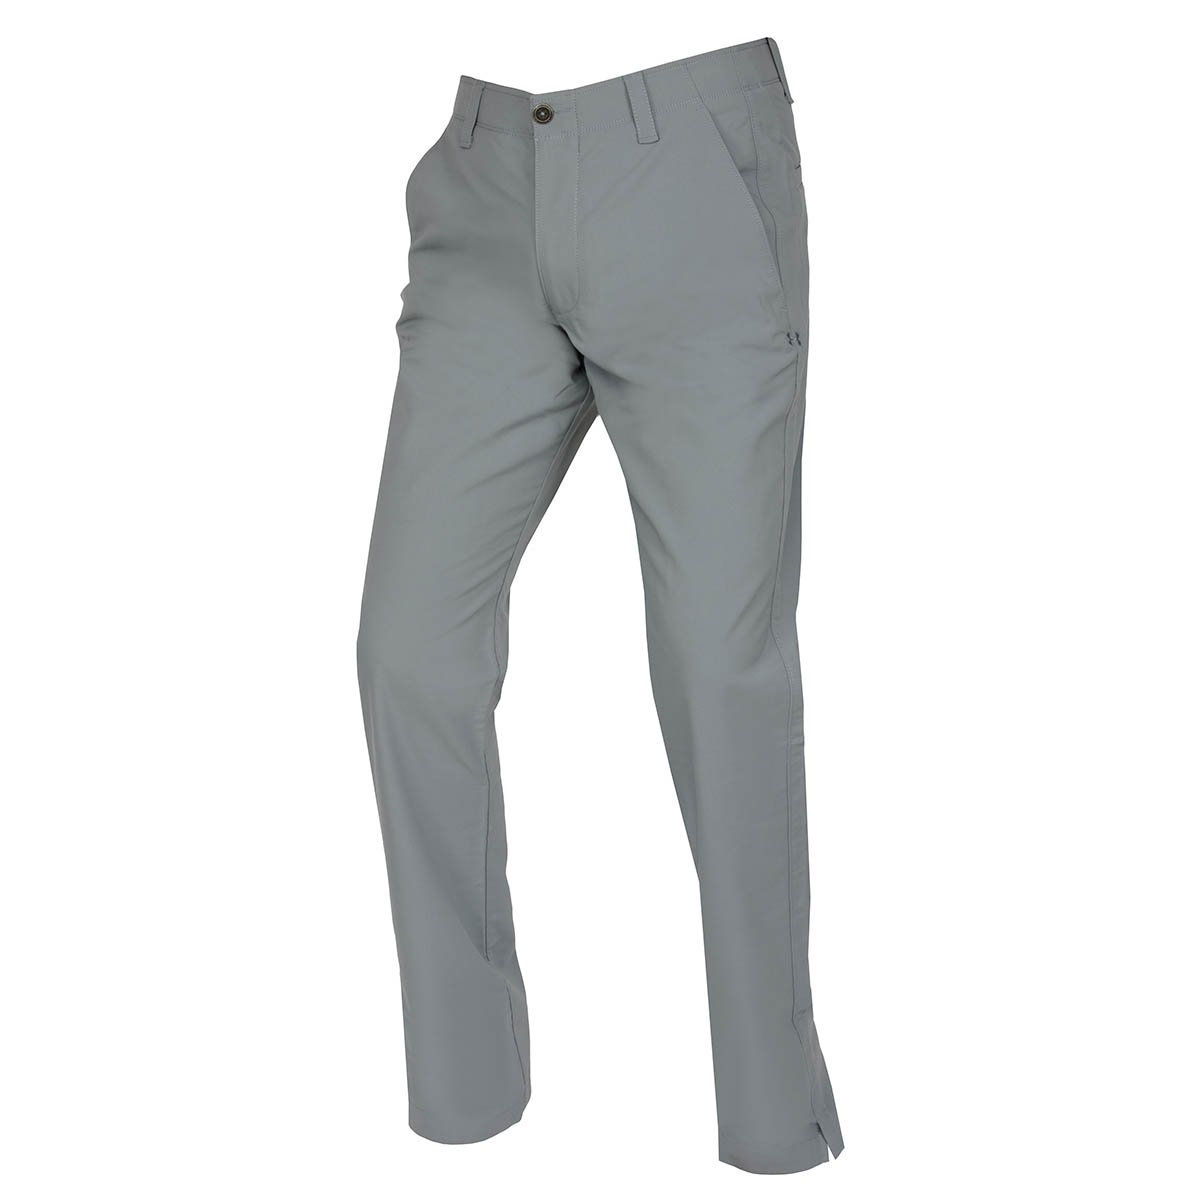 TALLA 38 Inch. Under Armour Golf Hose Matchplay Taper Pants - Prenda, Color